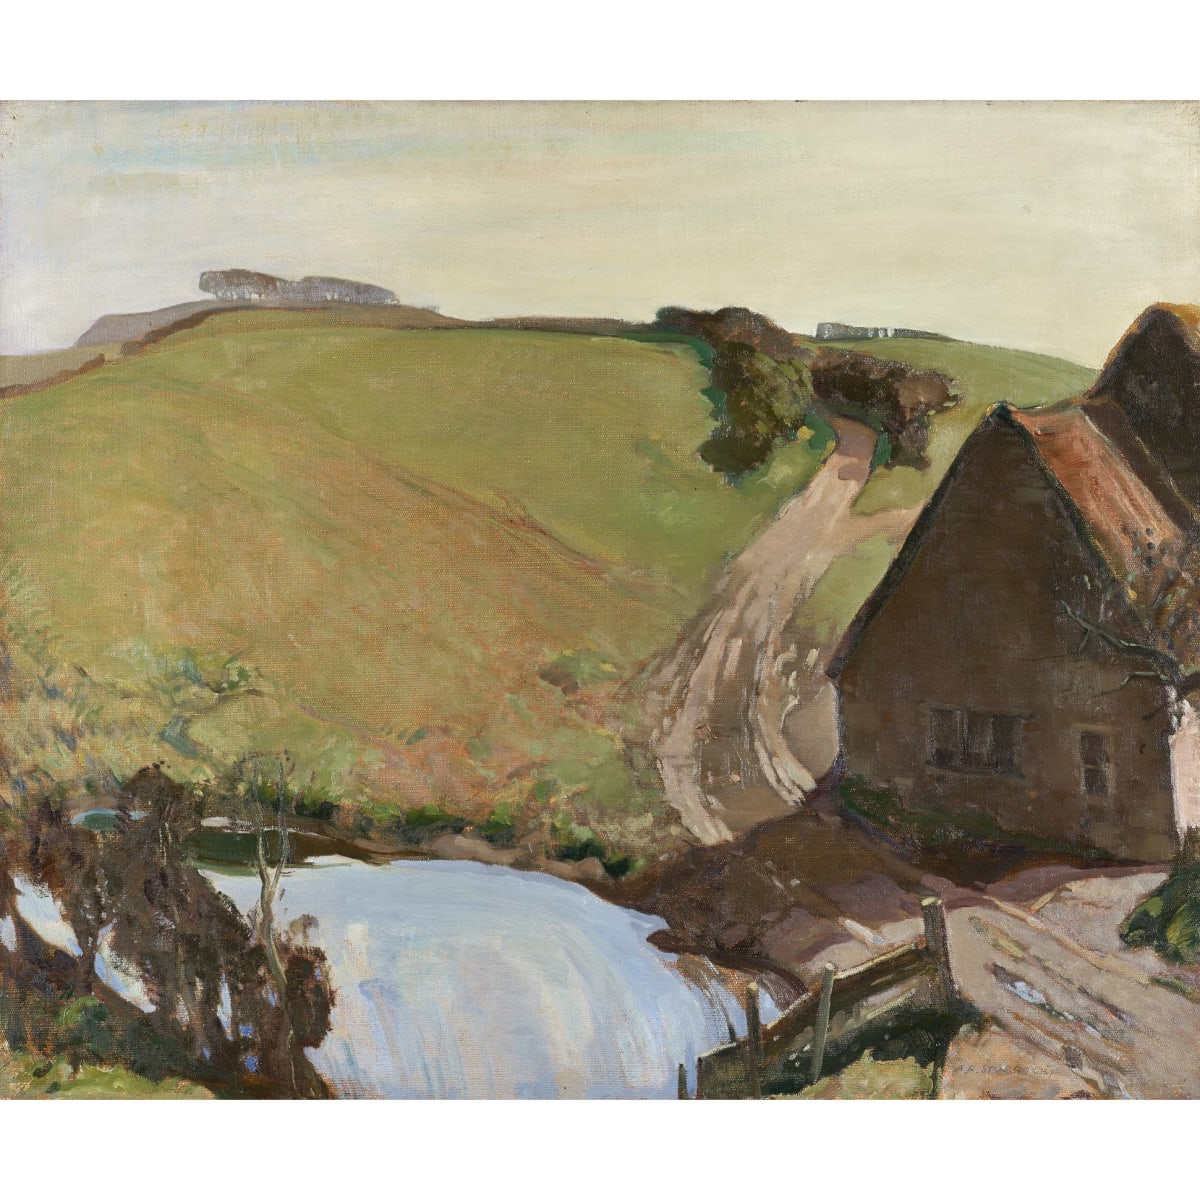 Alick Riddell Sturrock Challow Farm, Dorset signed oil on canvas 25 x 30 inches